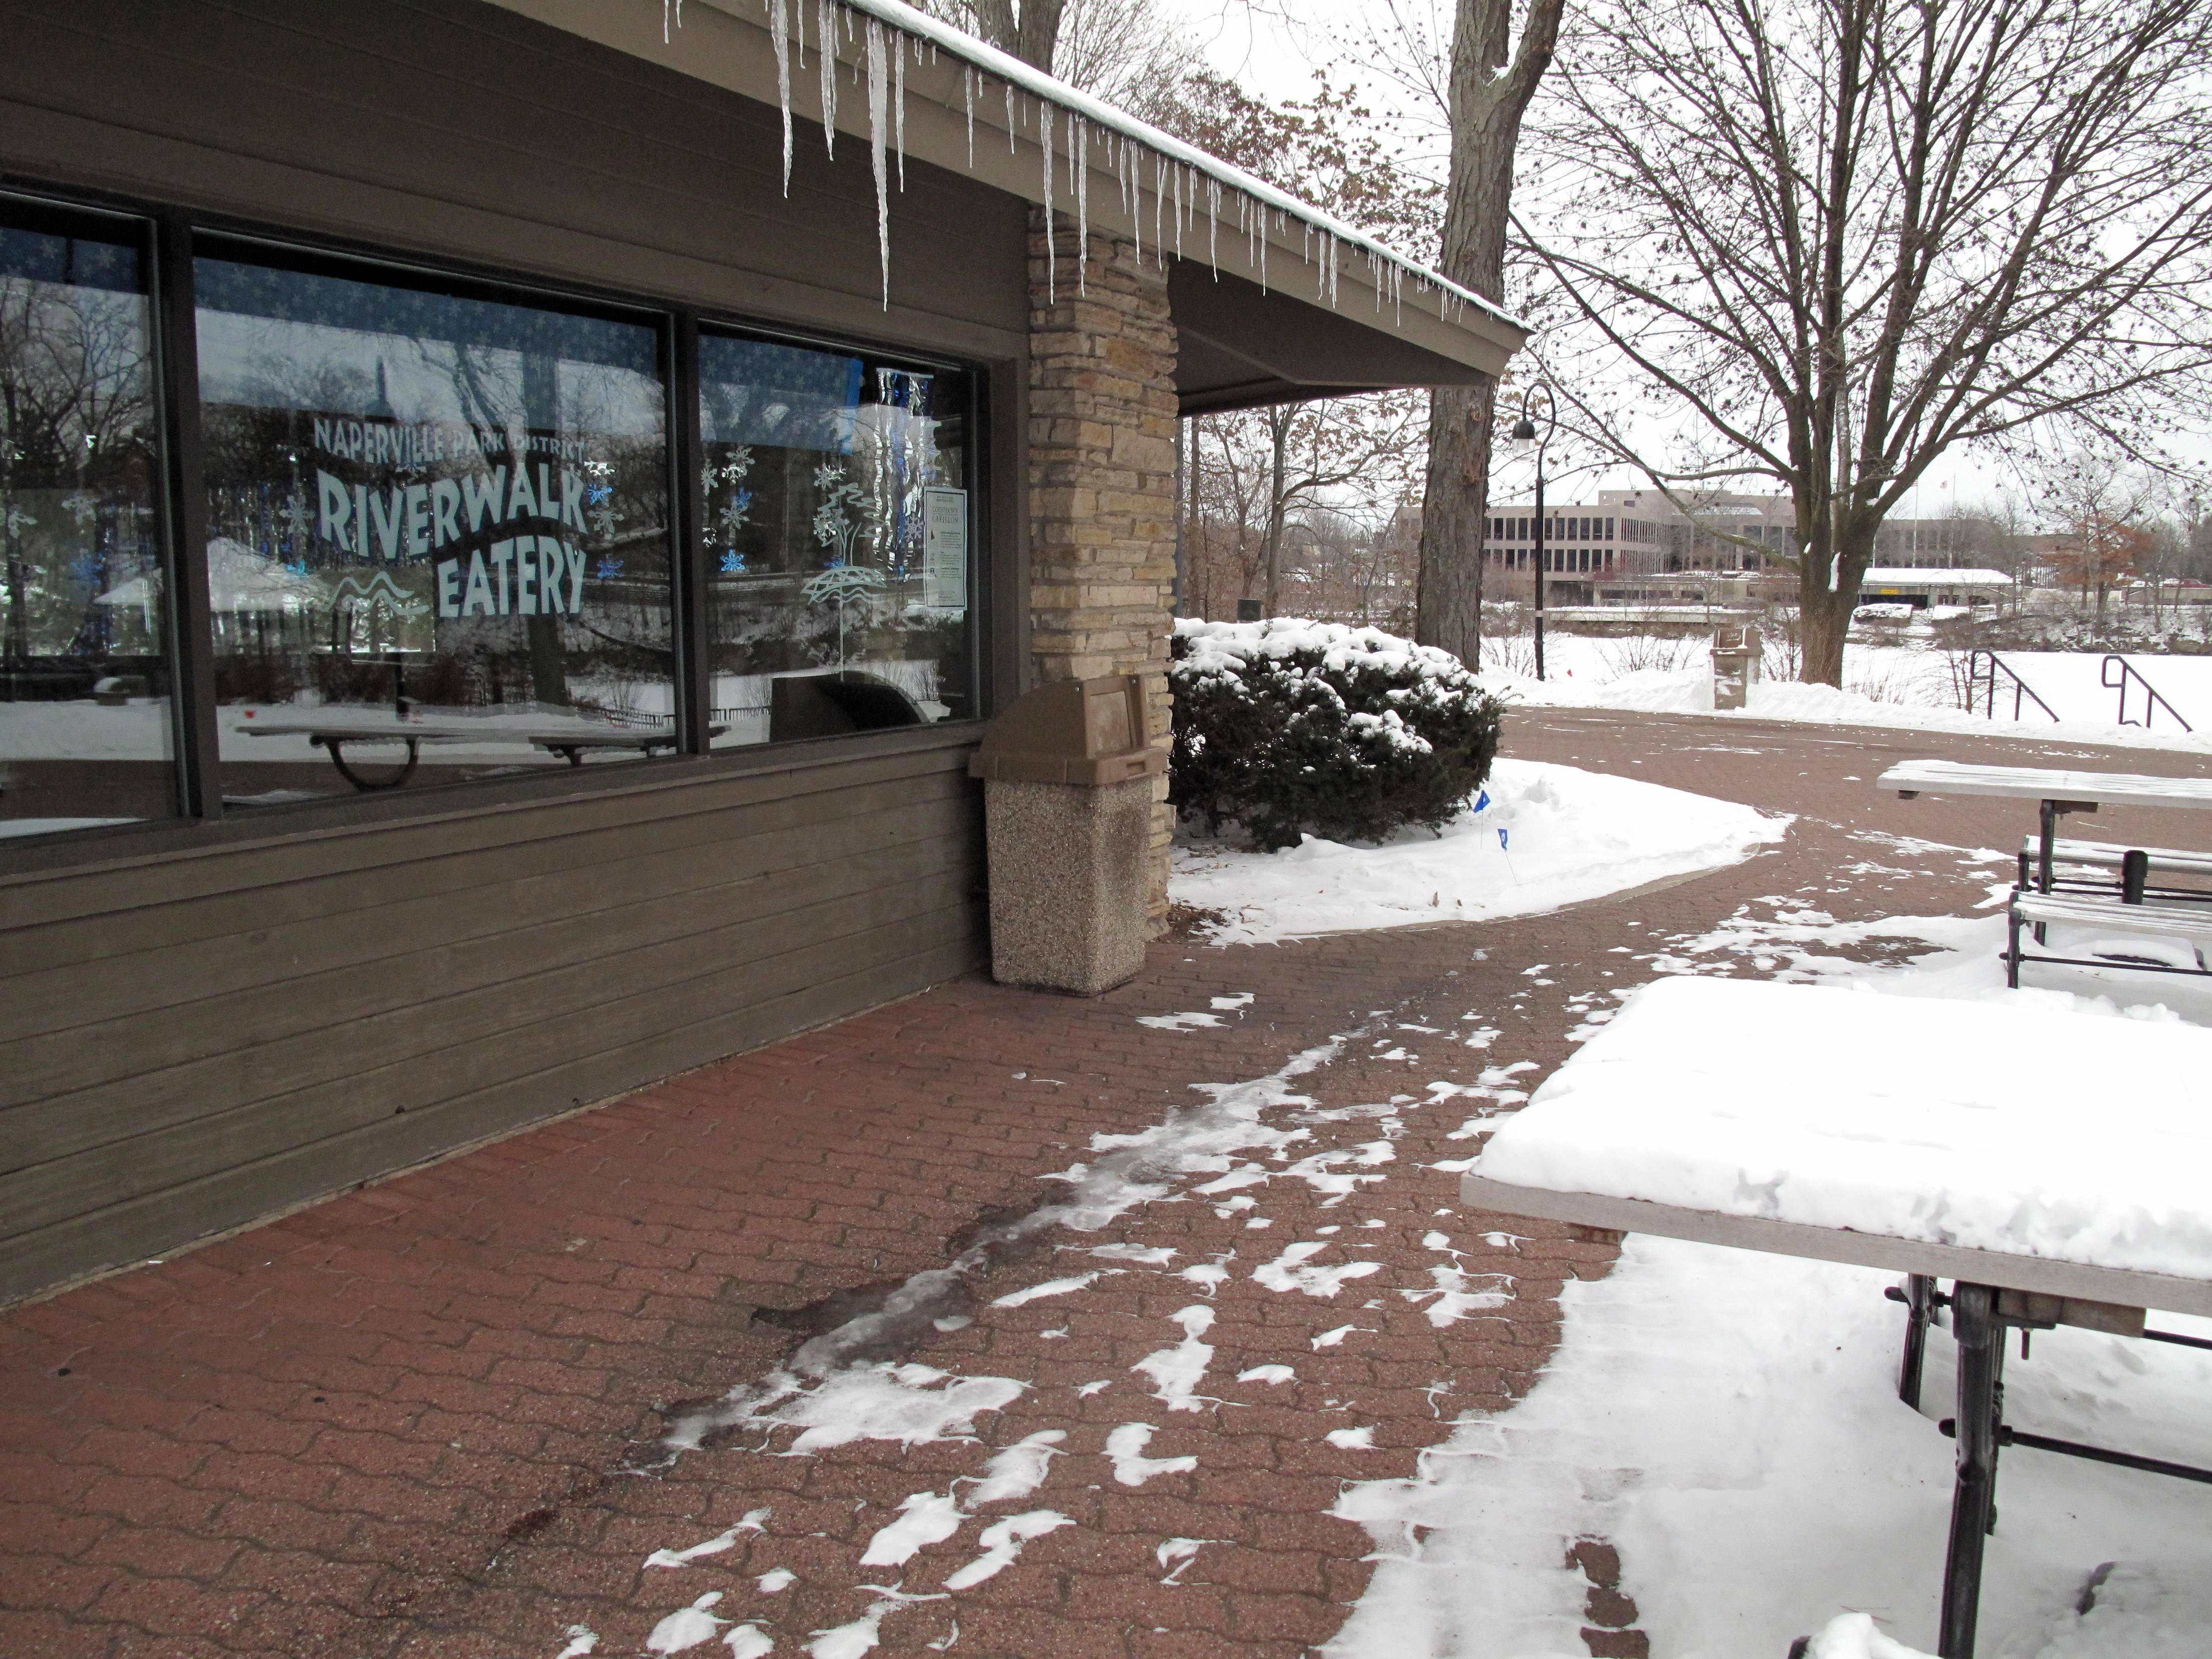 Naperville Riverwalk Eatery one step closer to liquor sales